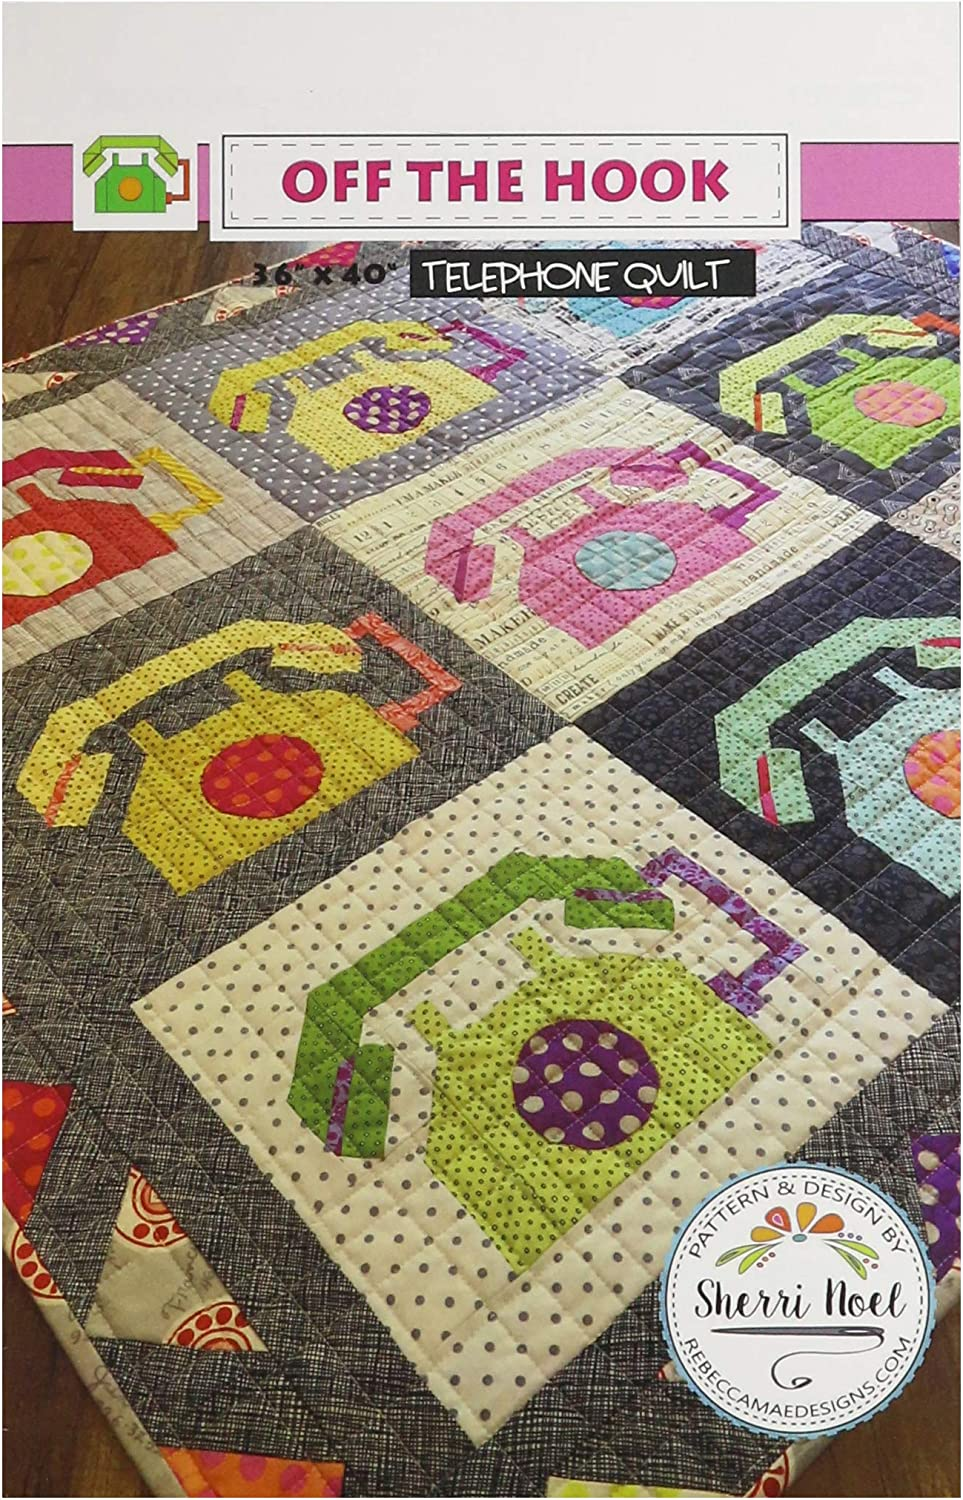 Rebecca Mae Designs Cheap super special price Off The Pattern Hook Outlet sale feature None Quilt Telephone